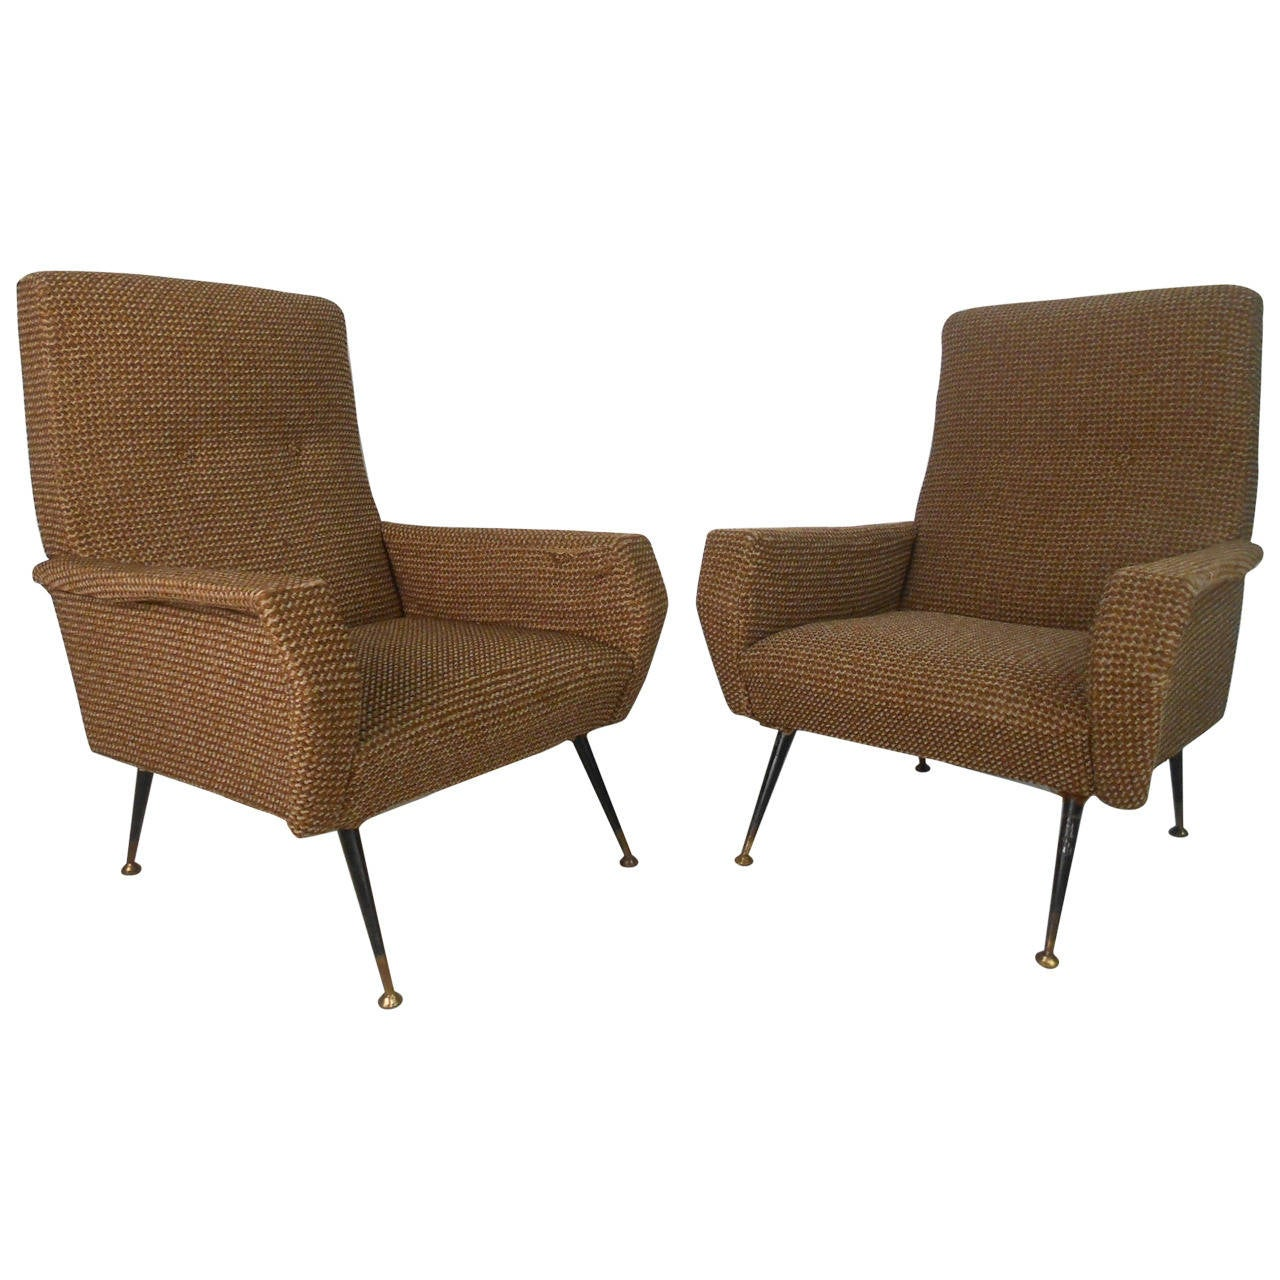 Pair of Mid-Century Modern Gio Ponti Style Armchairs For Sale